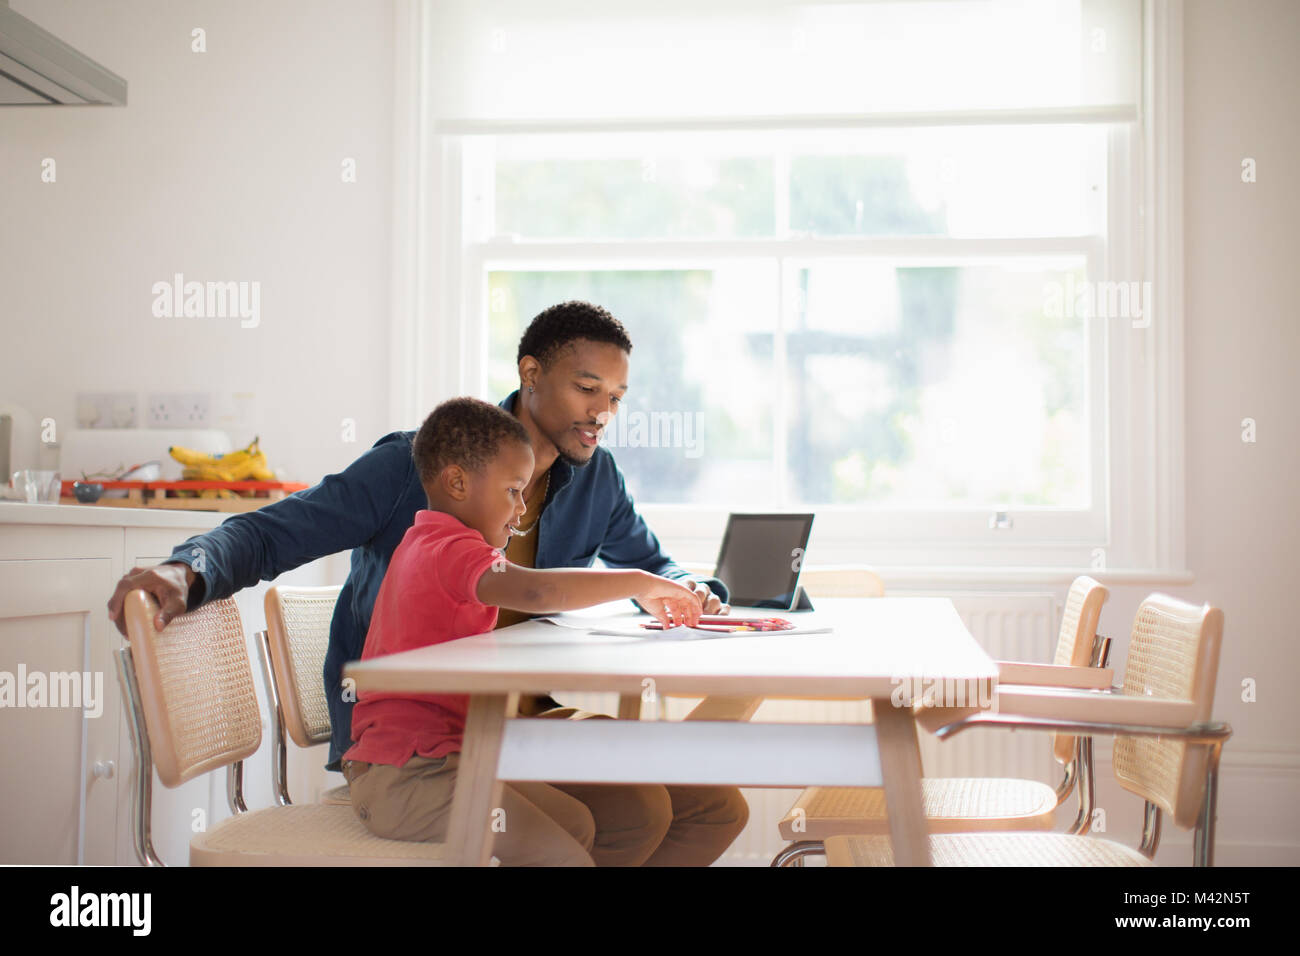 Father helping Son with school work Stock Photo